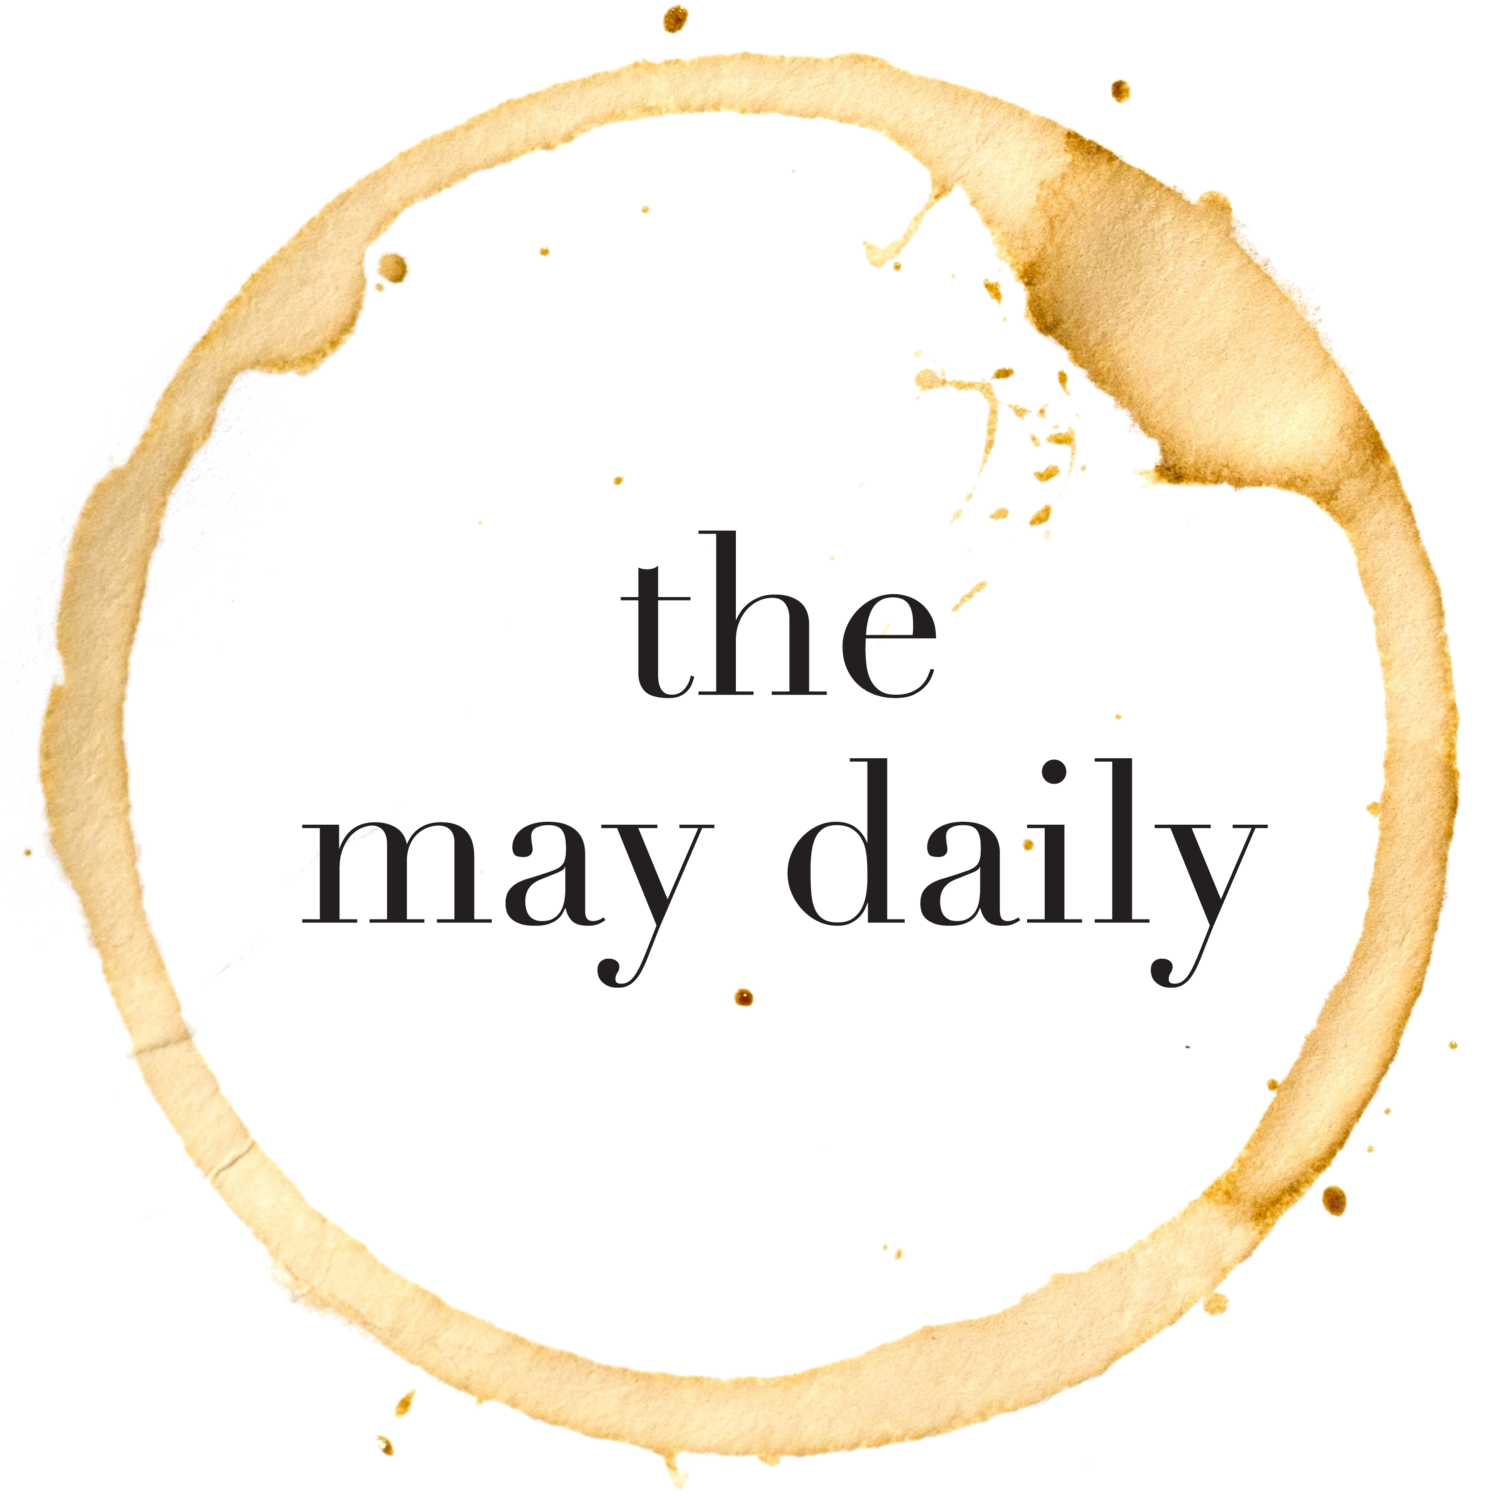 The May Daily